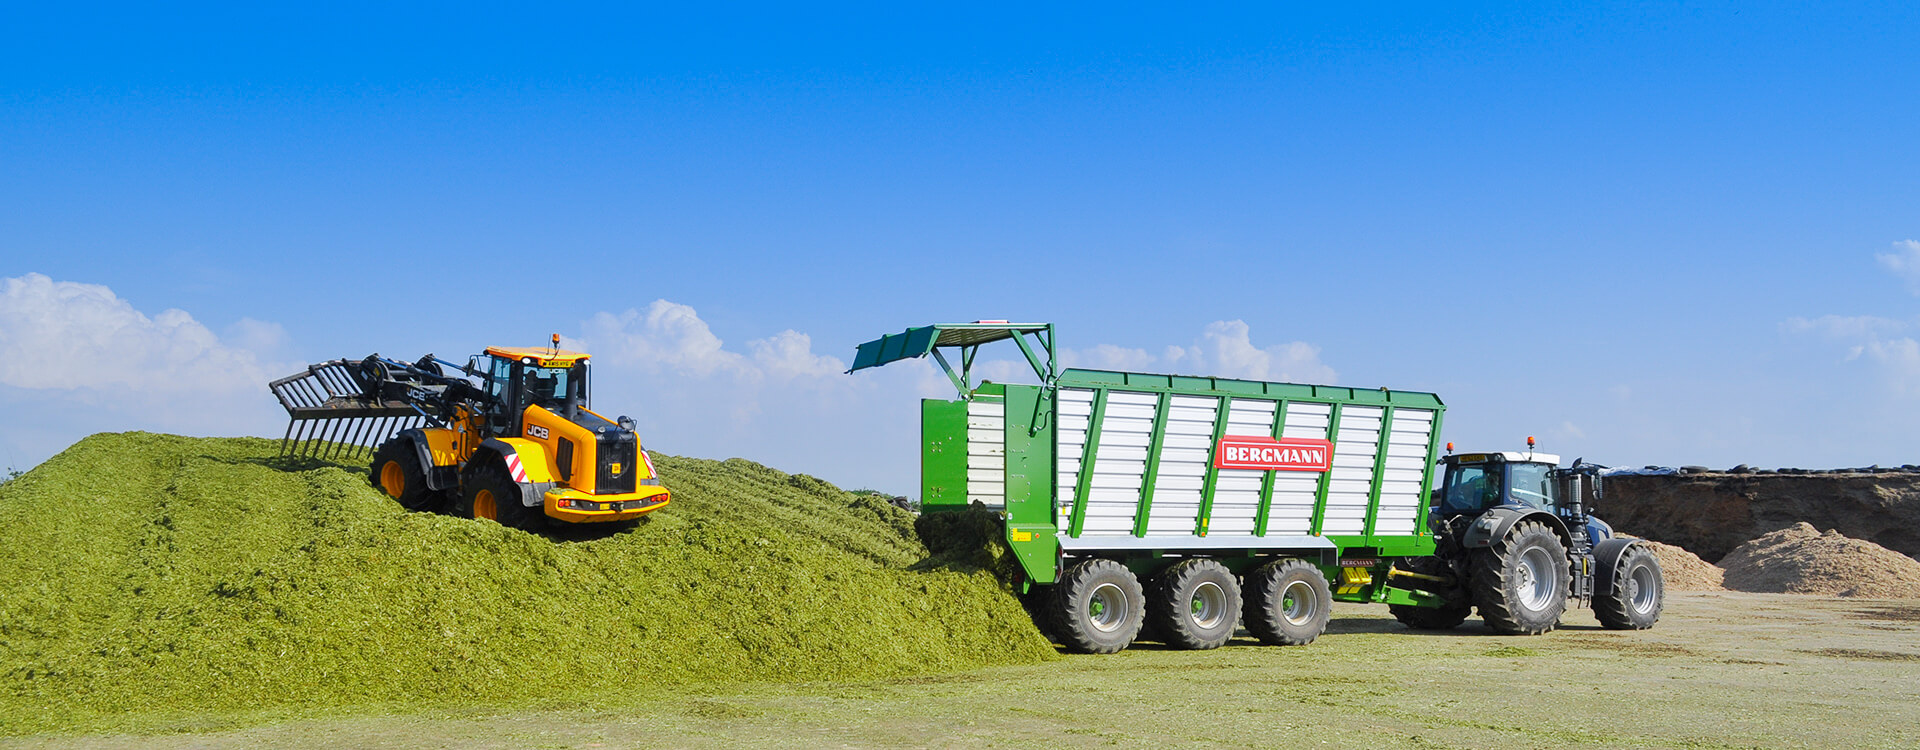 Moving Floor Silage trailer